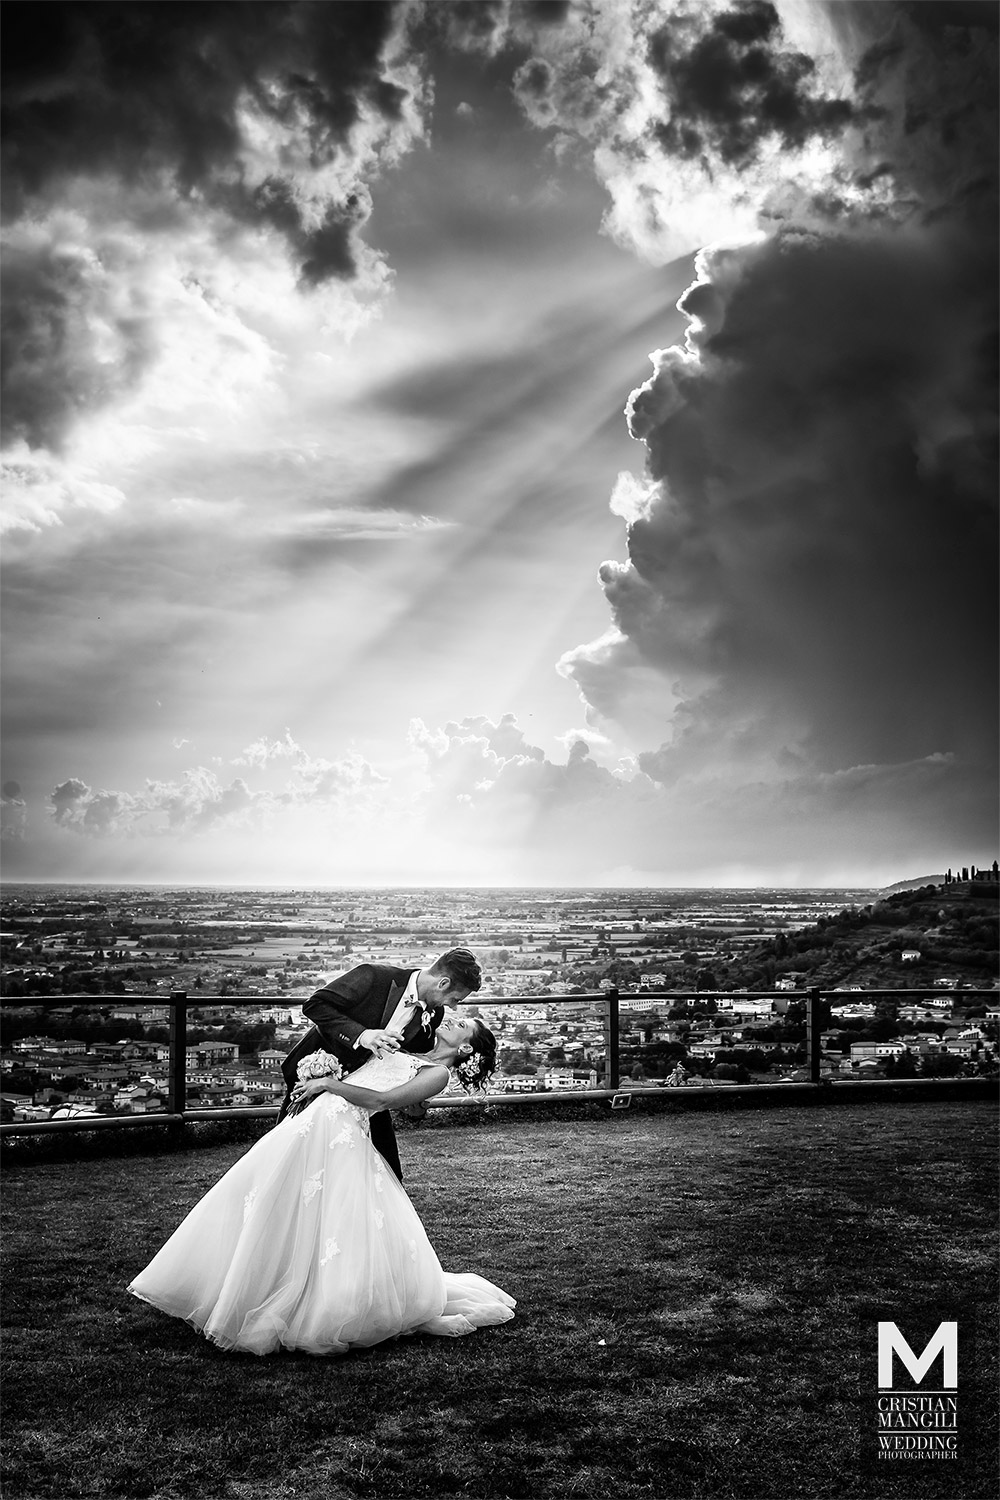 artistic-black-and-white-wedding-photography